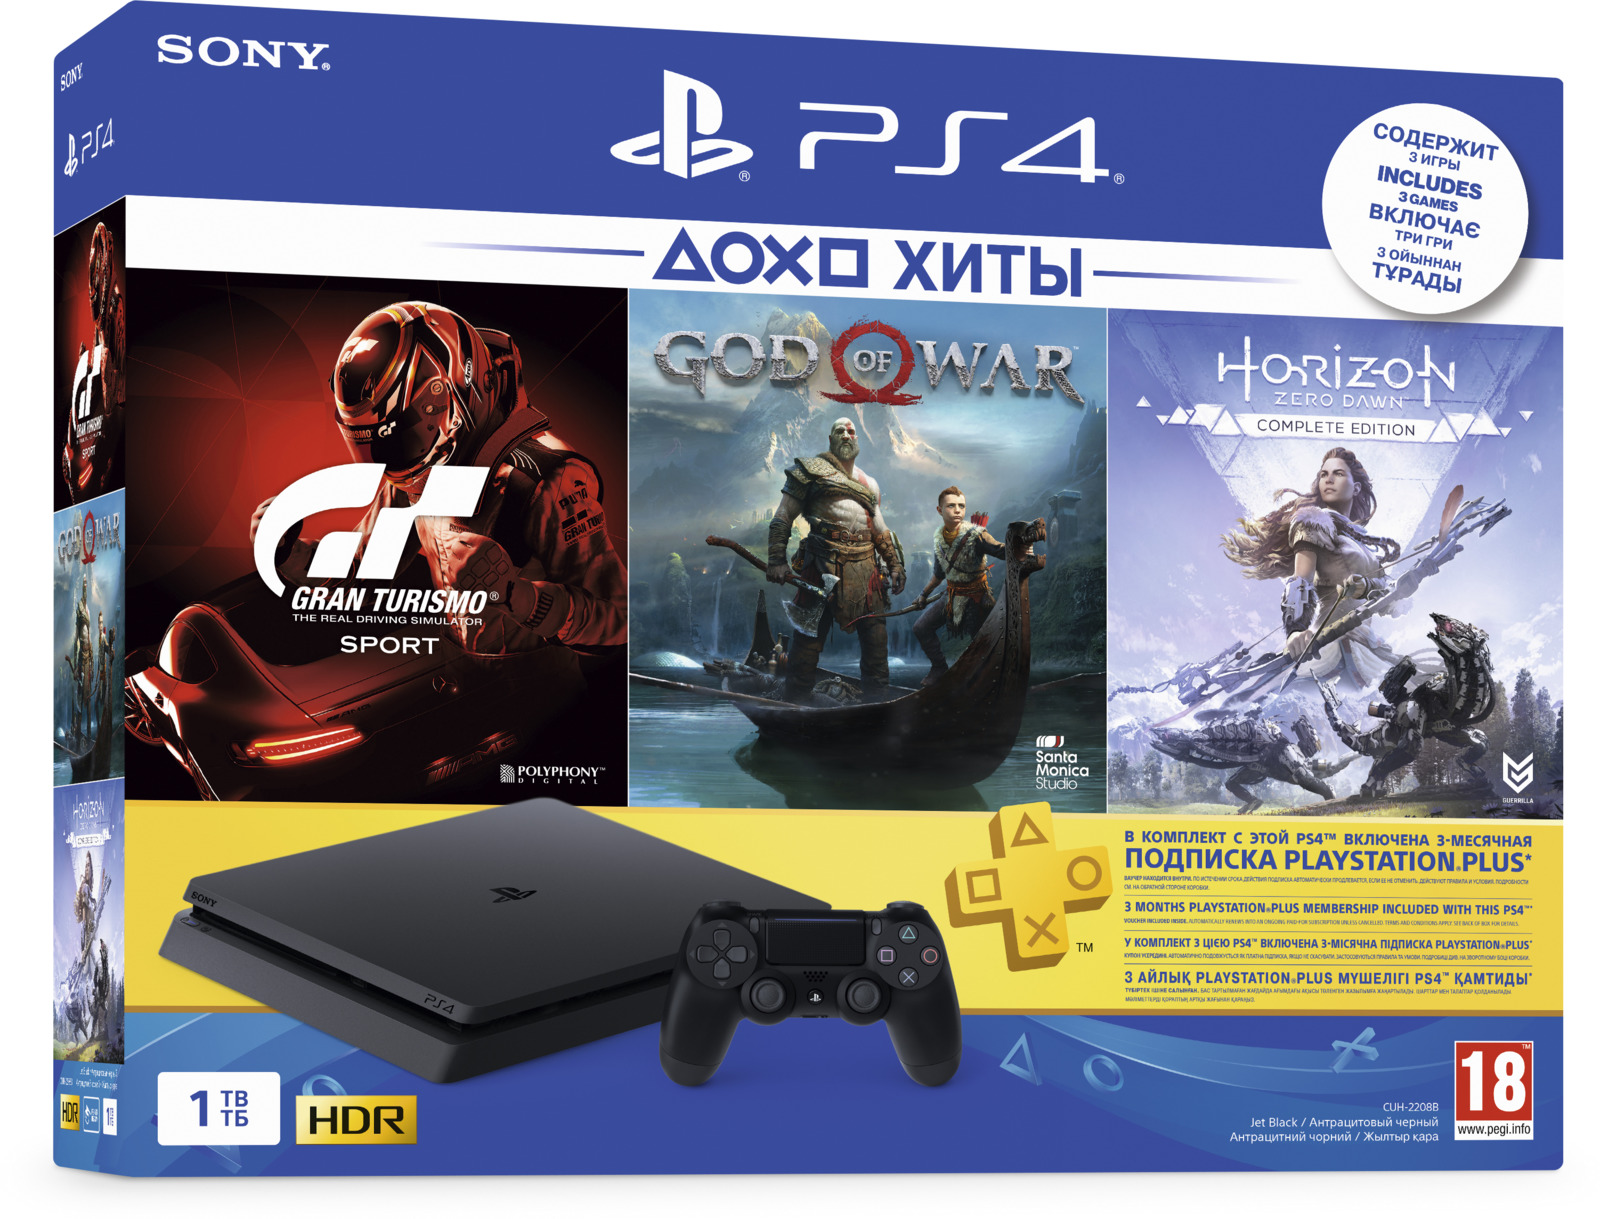 Игровая приставка Sony PlayStation 4 Slim (1TB) + Horizon Zero Dawn CE + Gran Turismo Sport + God of War + PS Plus 3 месяца игровая консоль sony playstation 4 slim 1tb black cuh 2208b gran turismo sport god of war horizon zero dawn ce psn 3 месяца